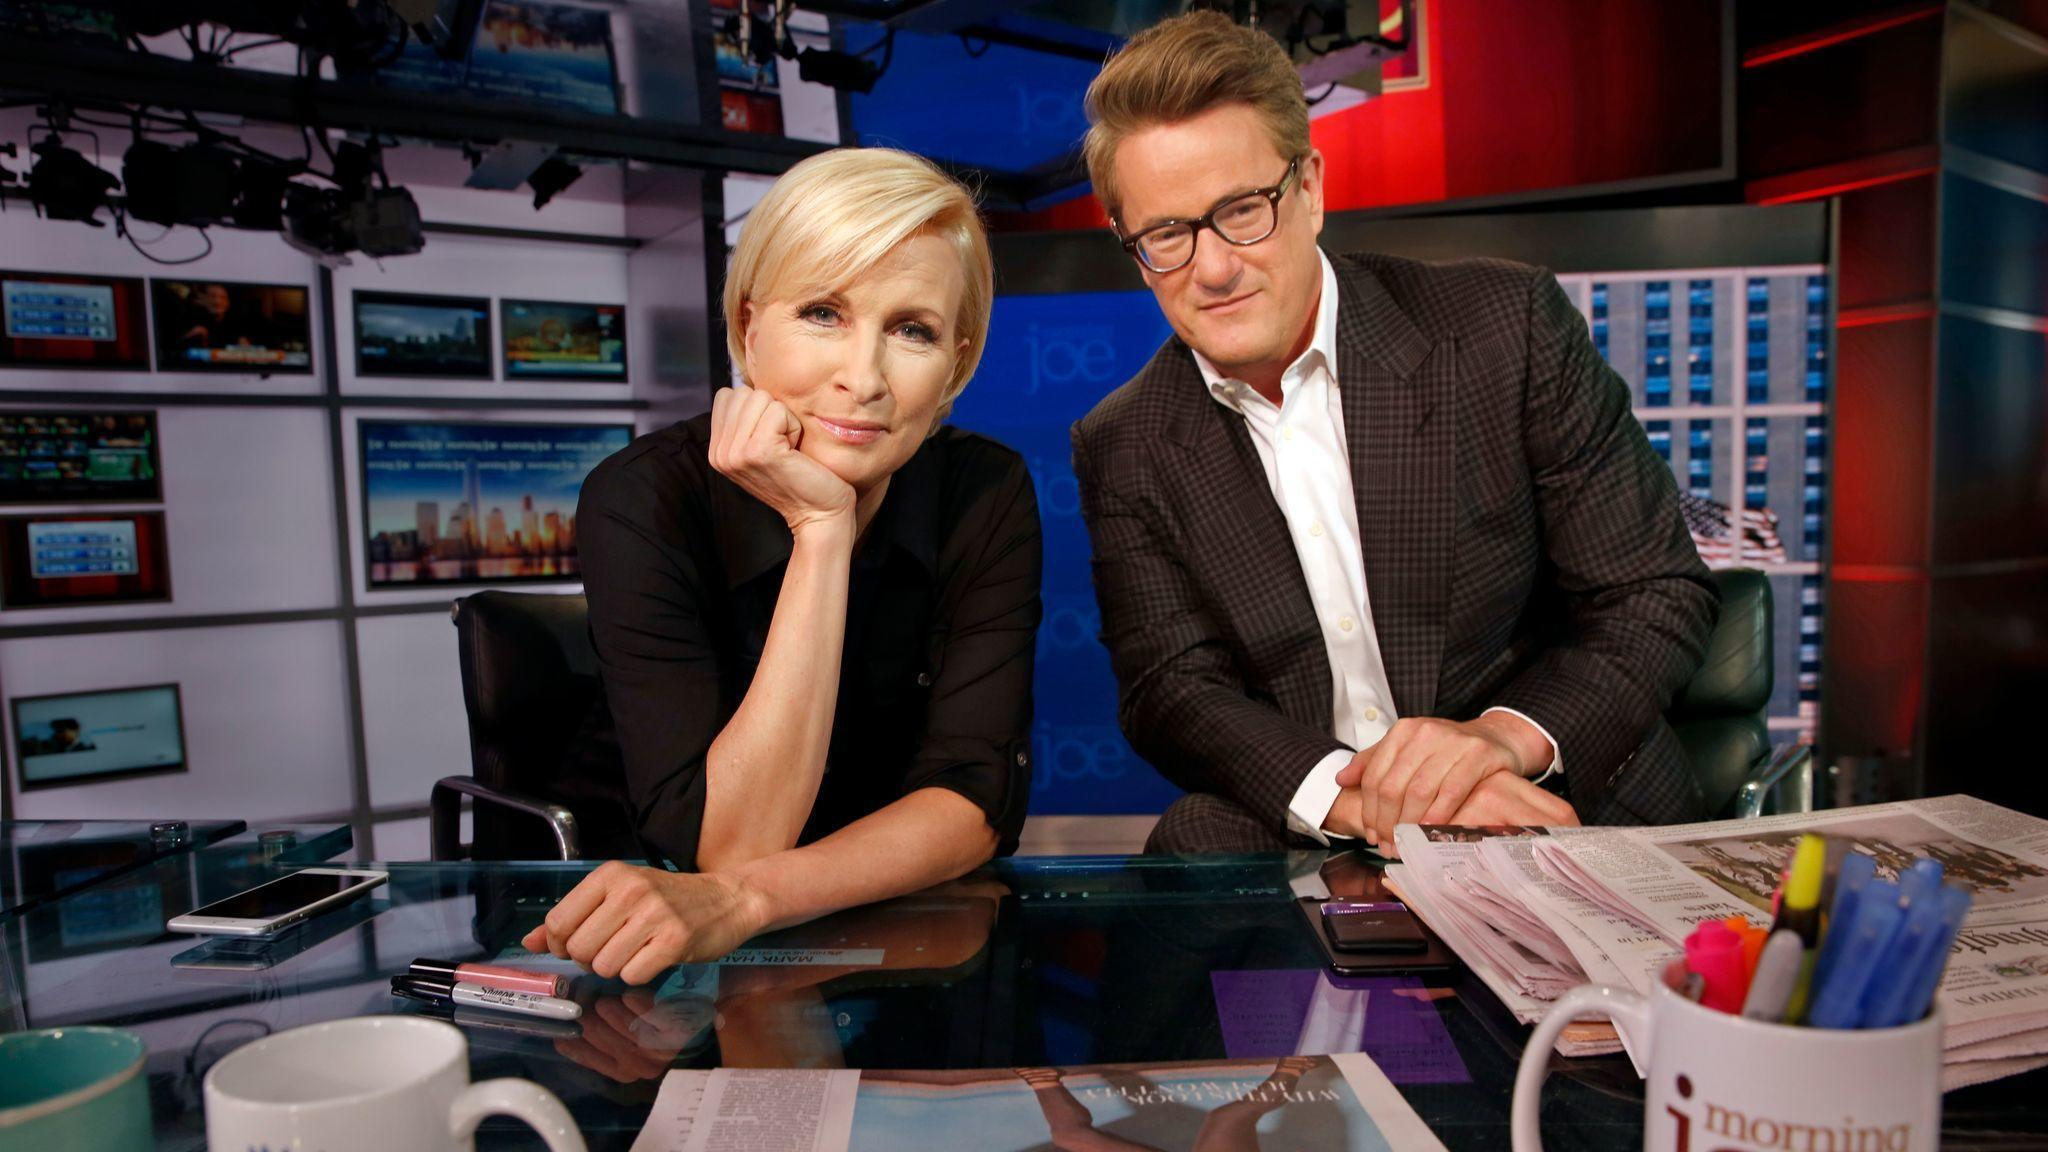 http://www.trbimg.com/img-590b551a/turbine/la-et-entertainment-news-updates-may-joe-scarborough-and-mika-brzezinski-1493913537